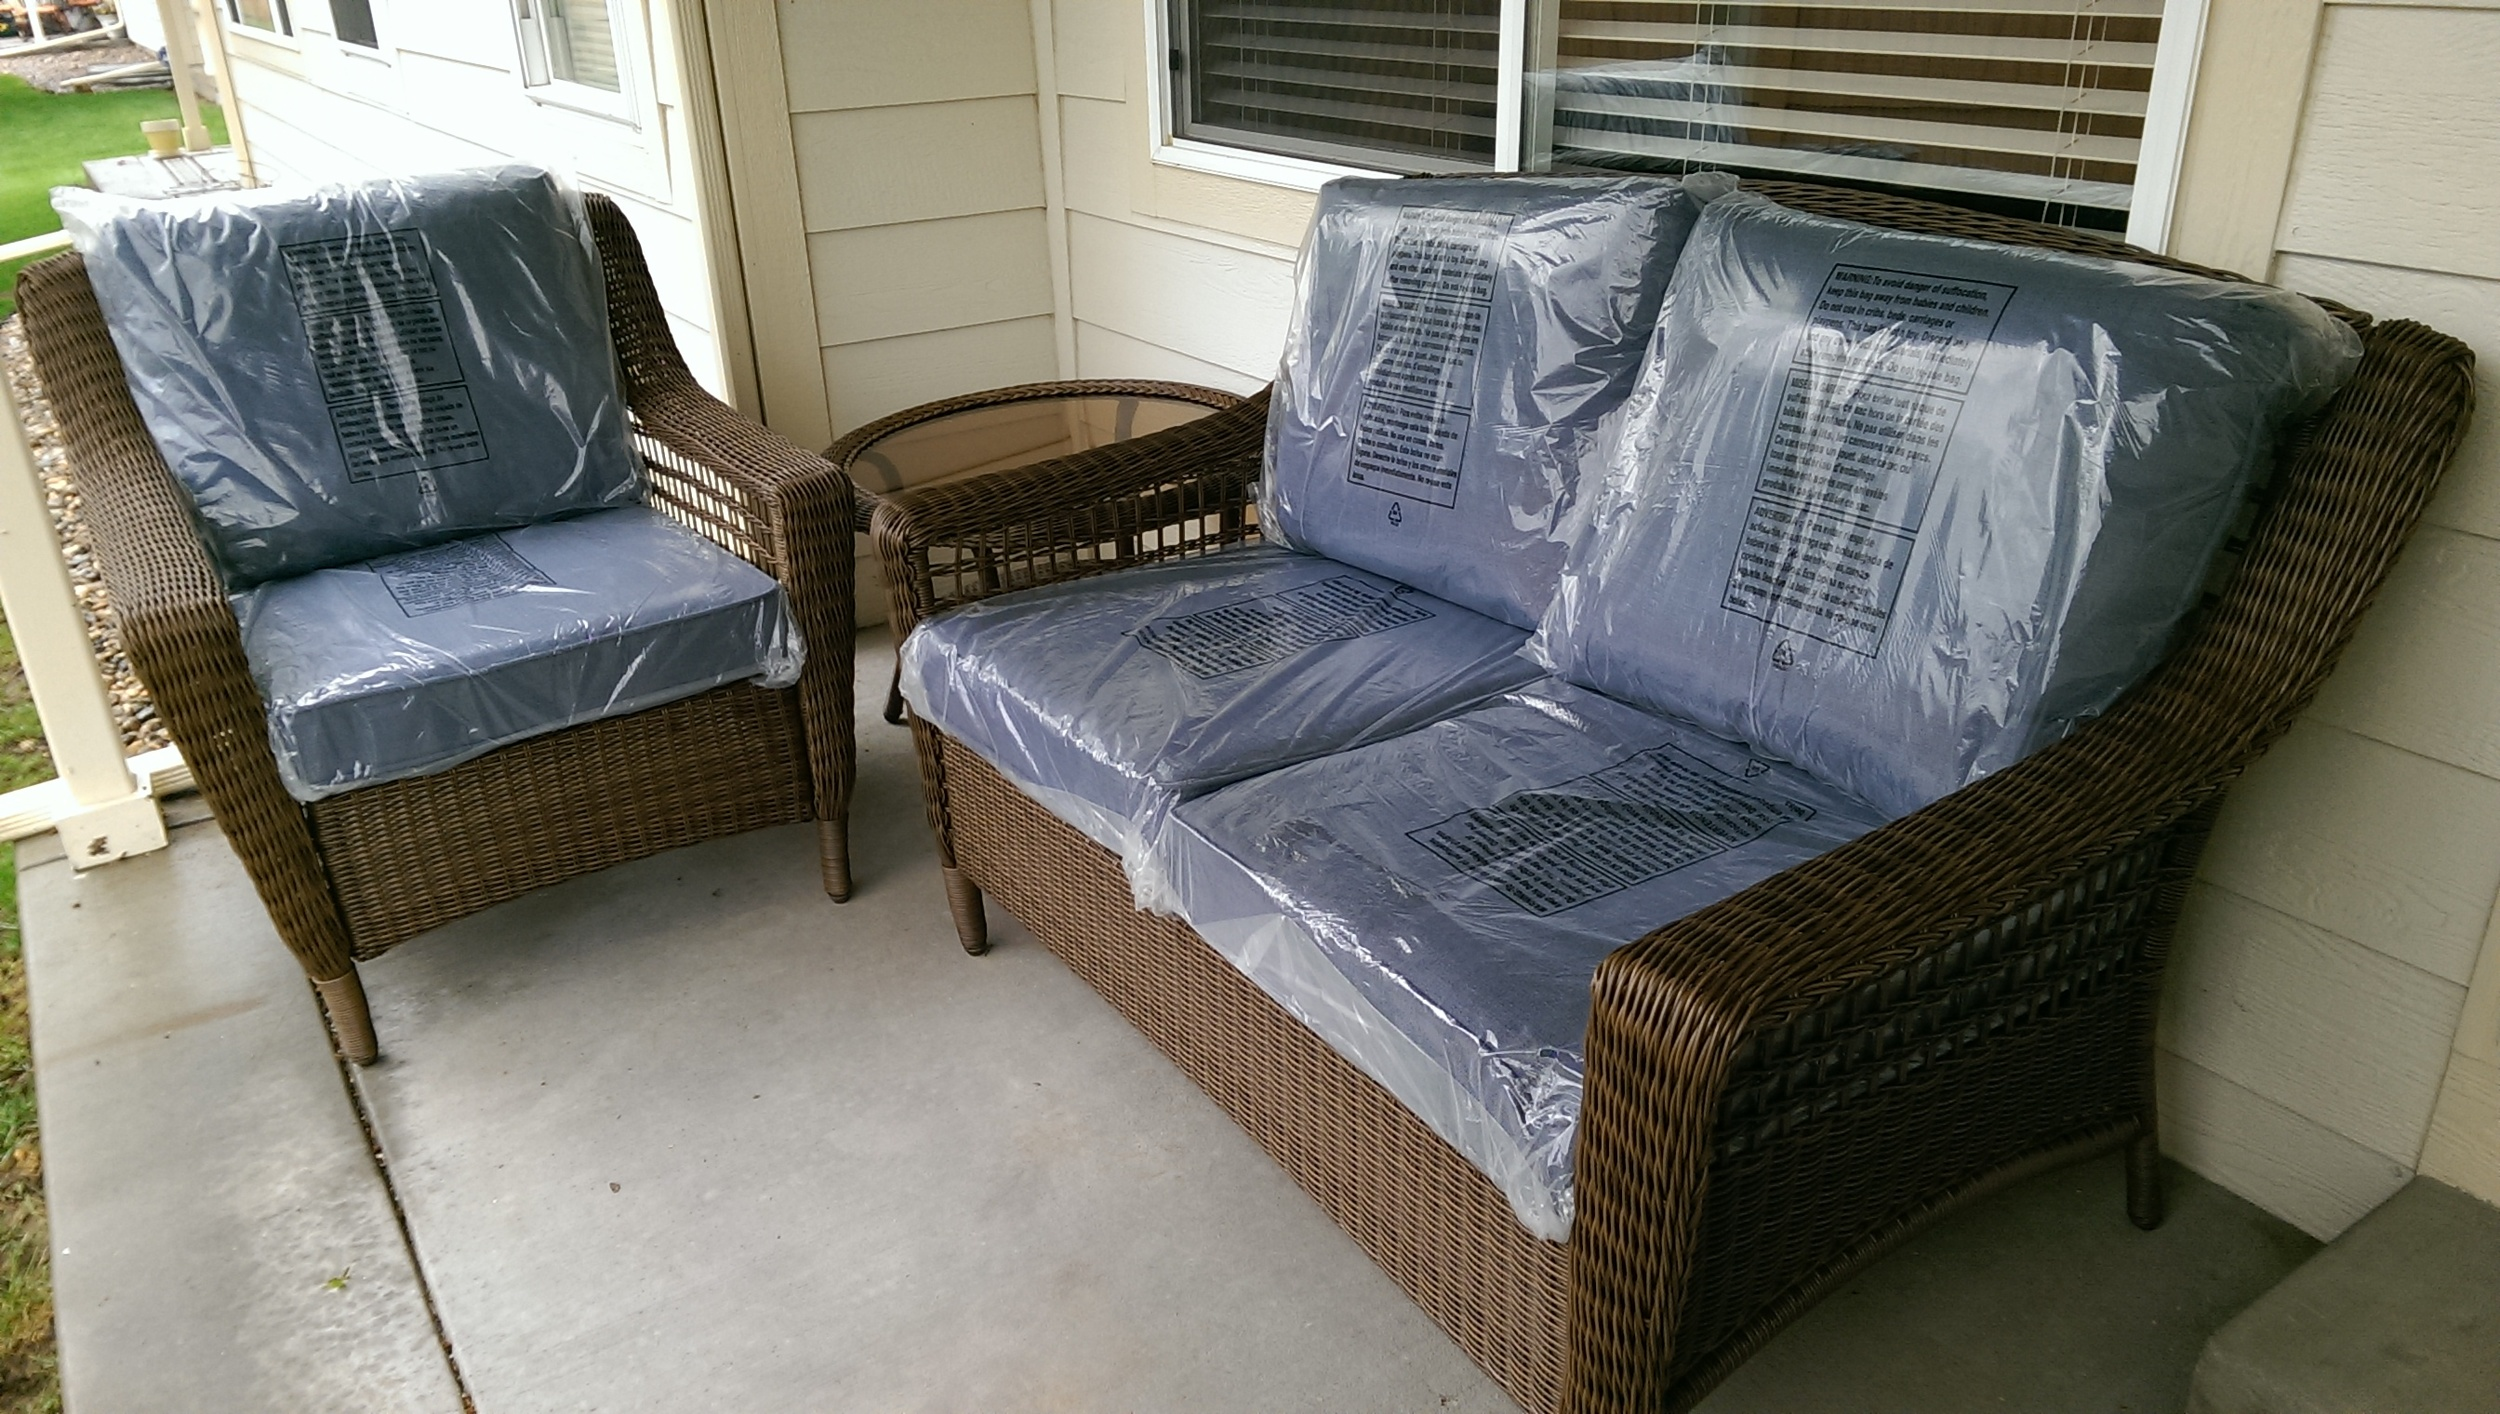 New patio set delivered and assembled.